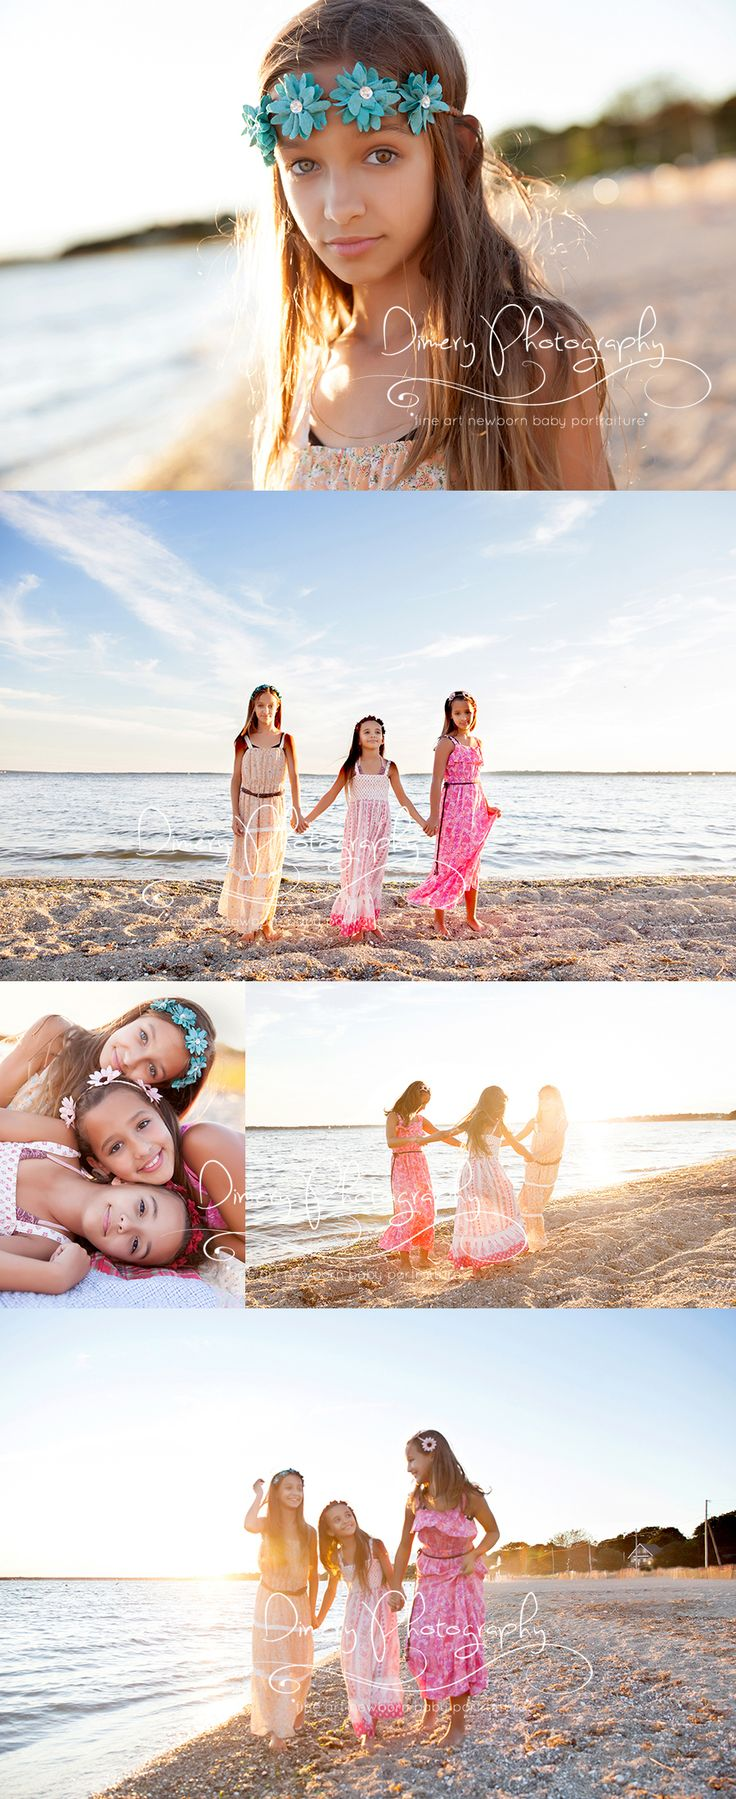 sister portraits, three girl poses, beach portraits, sunset family photo session, natural light family photography, preteen portrait session, bohemian style © Dimery Photography 2015